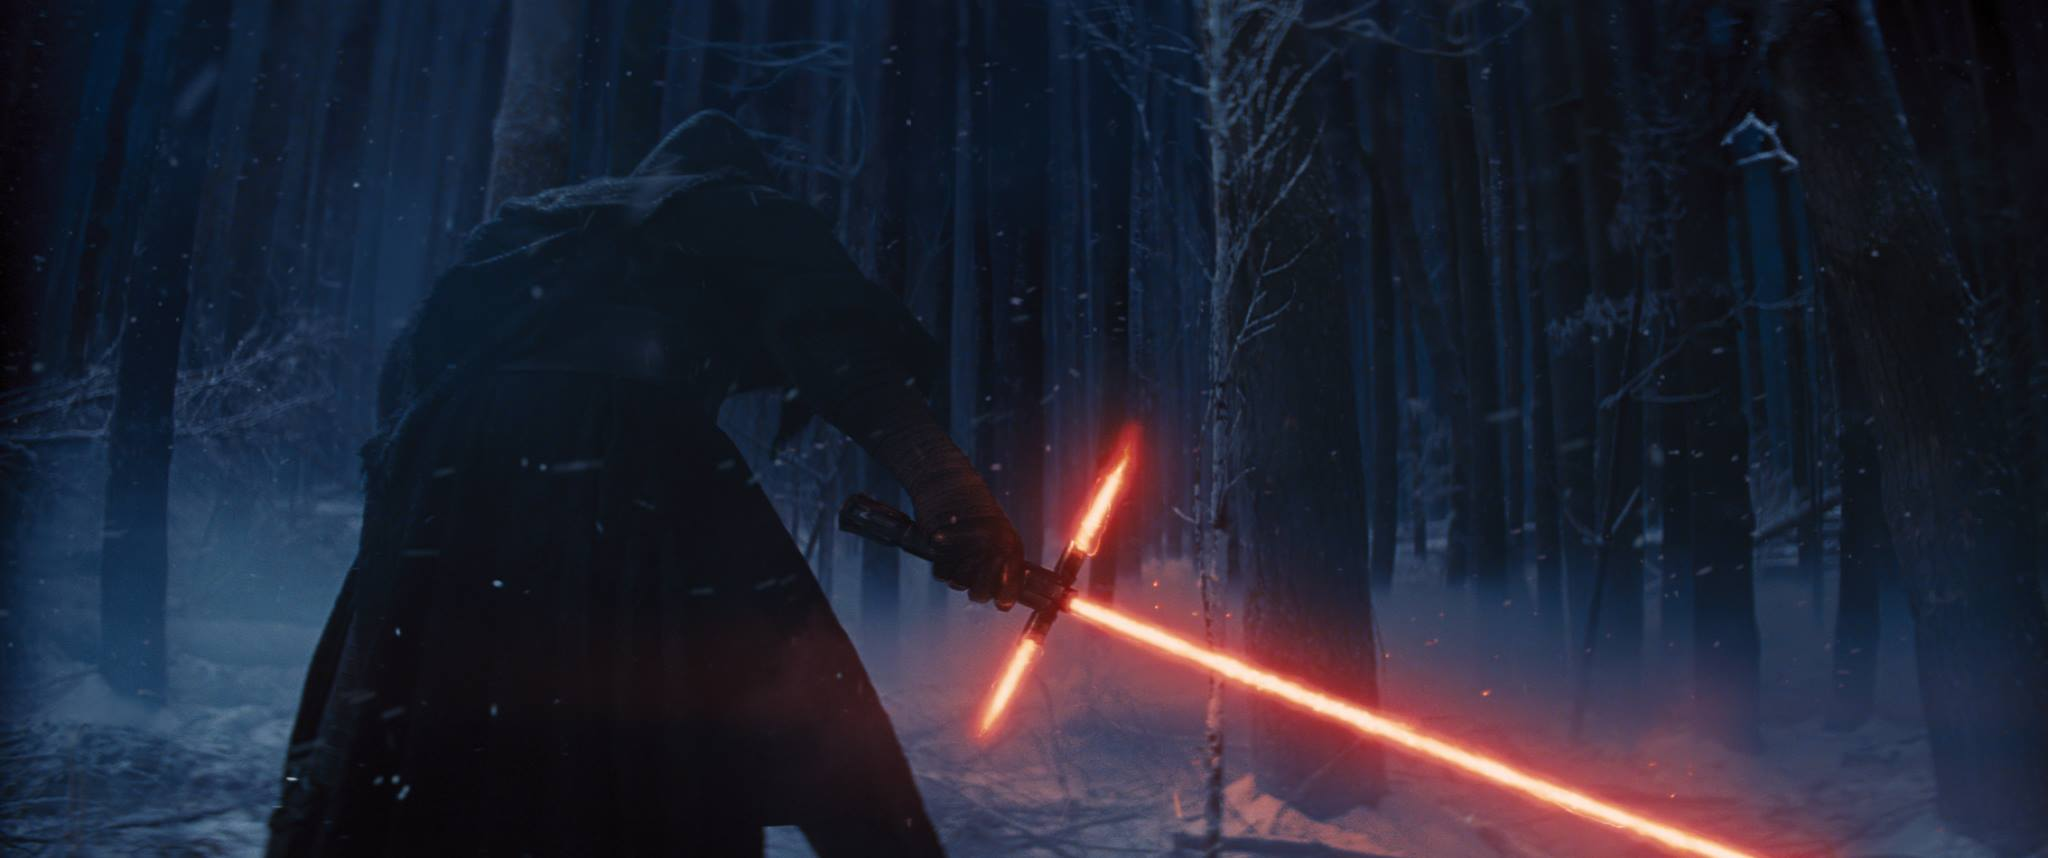 Star Wars: Episode VII : The Force Awakens